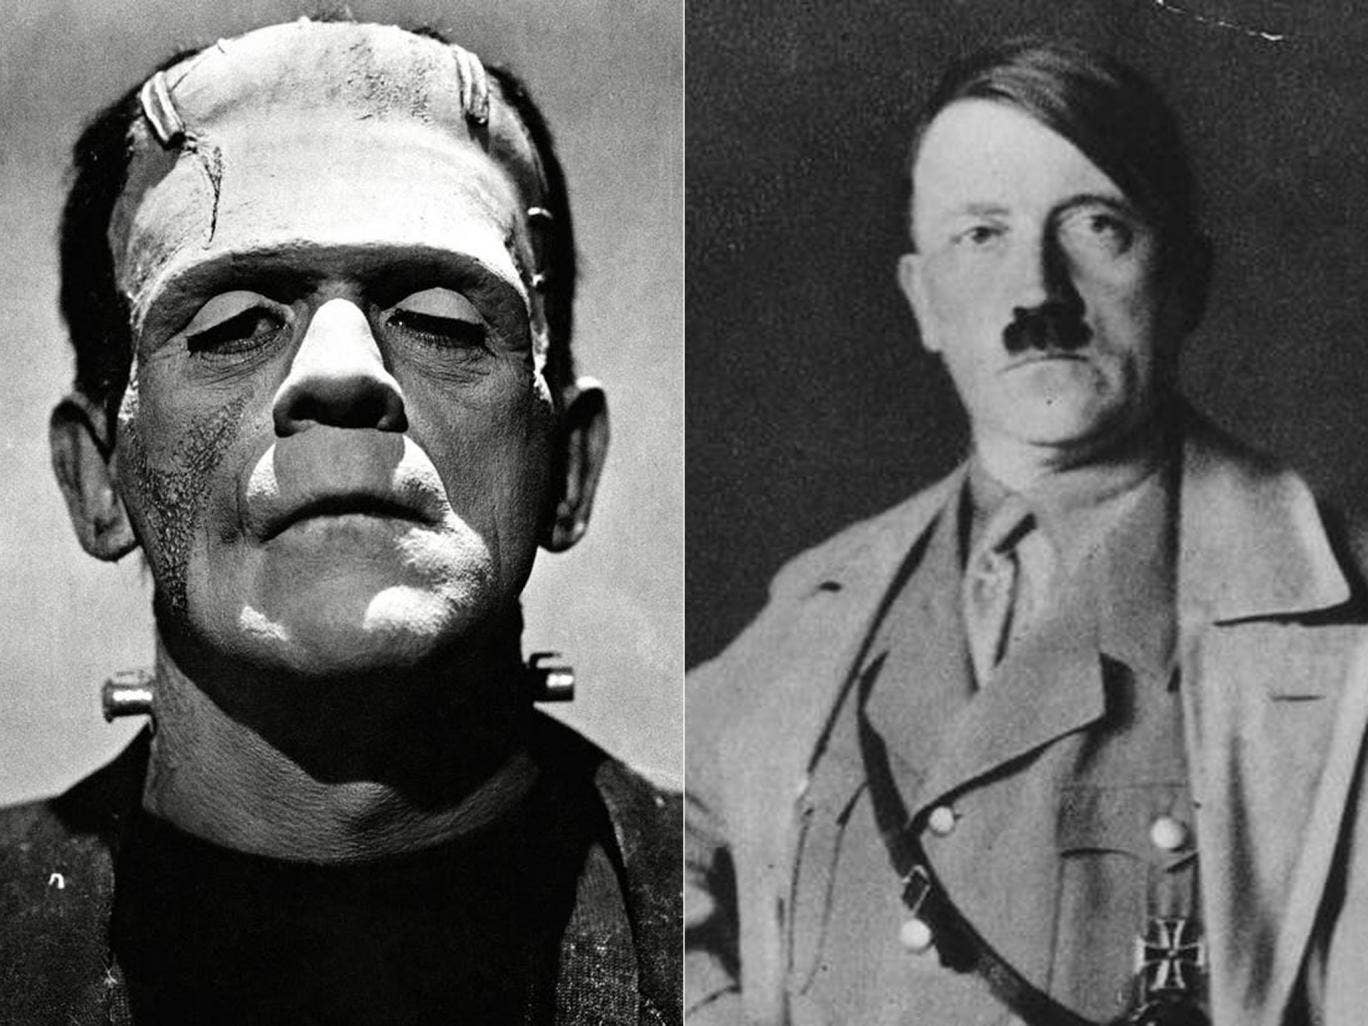 Among the options for voters in the forthcoming elections are Adolf Hitler or and Frankenstein.